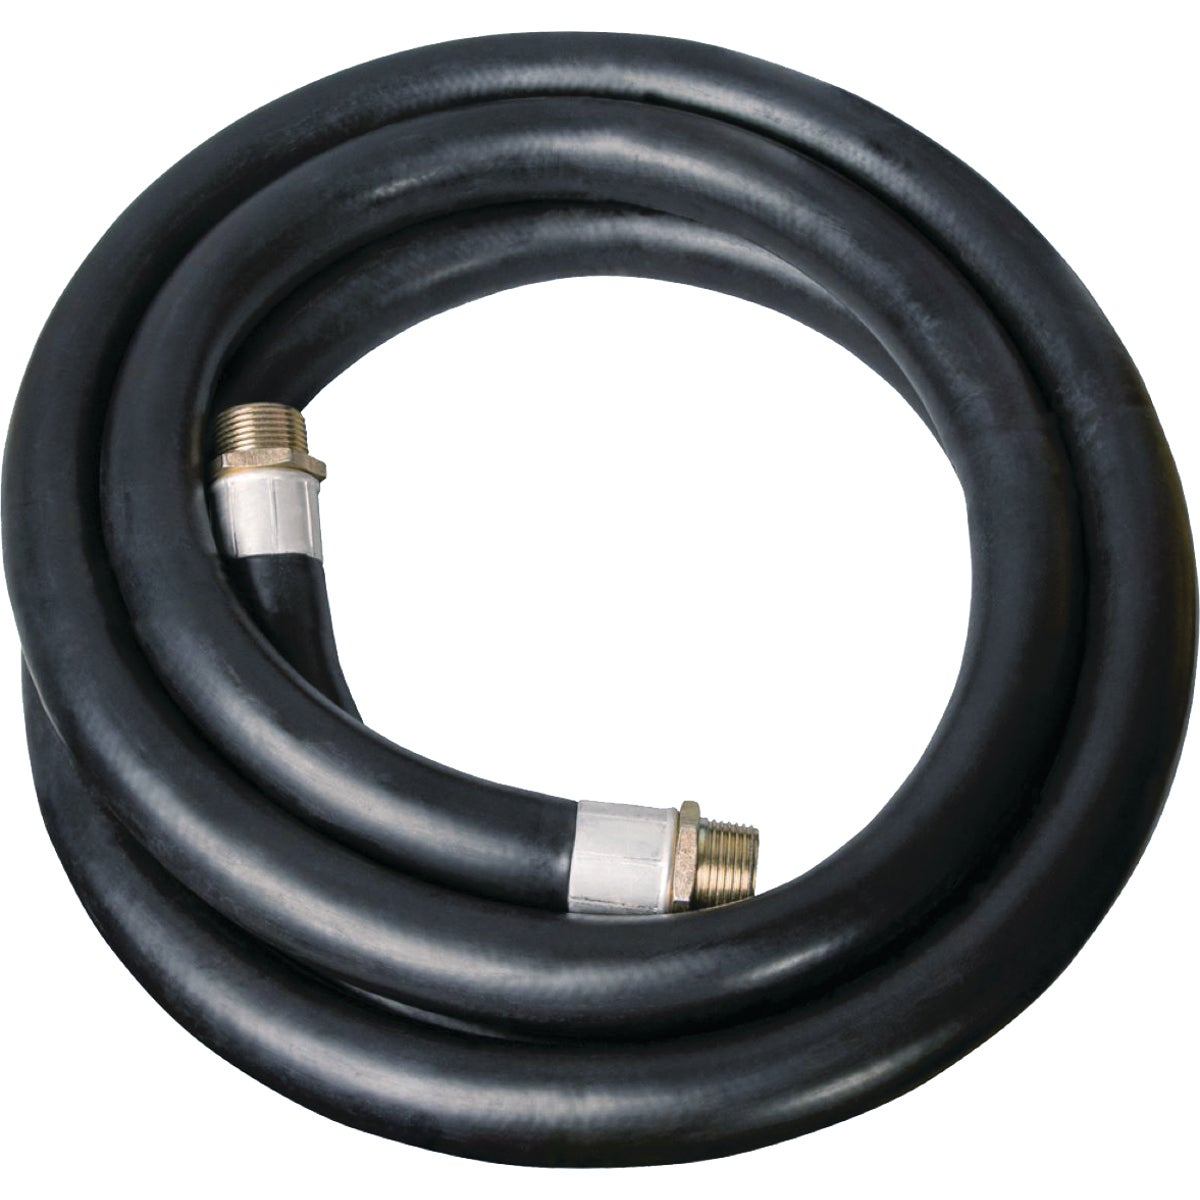 14' FUEL TRANSFER HOSE - 98108460 by Apache Hose Belting